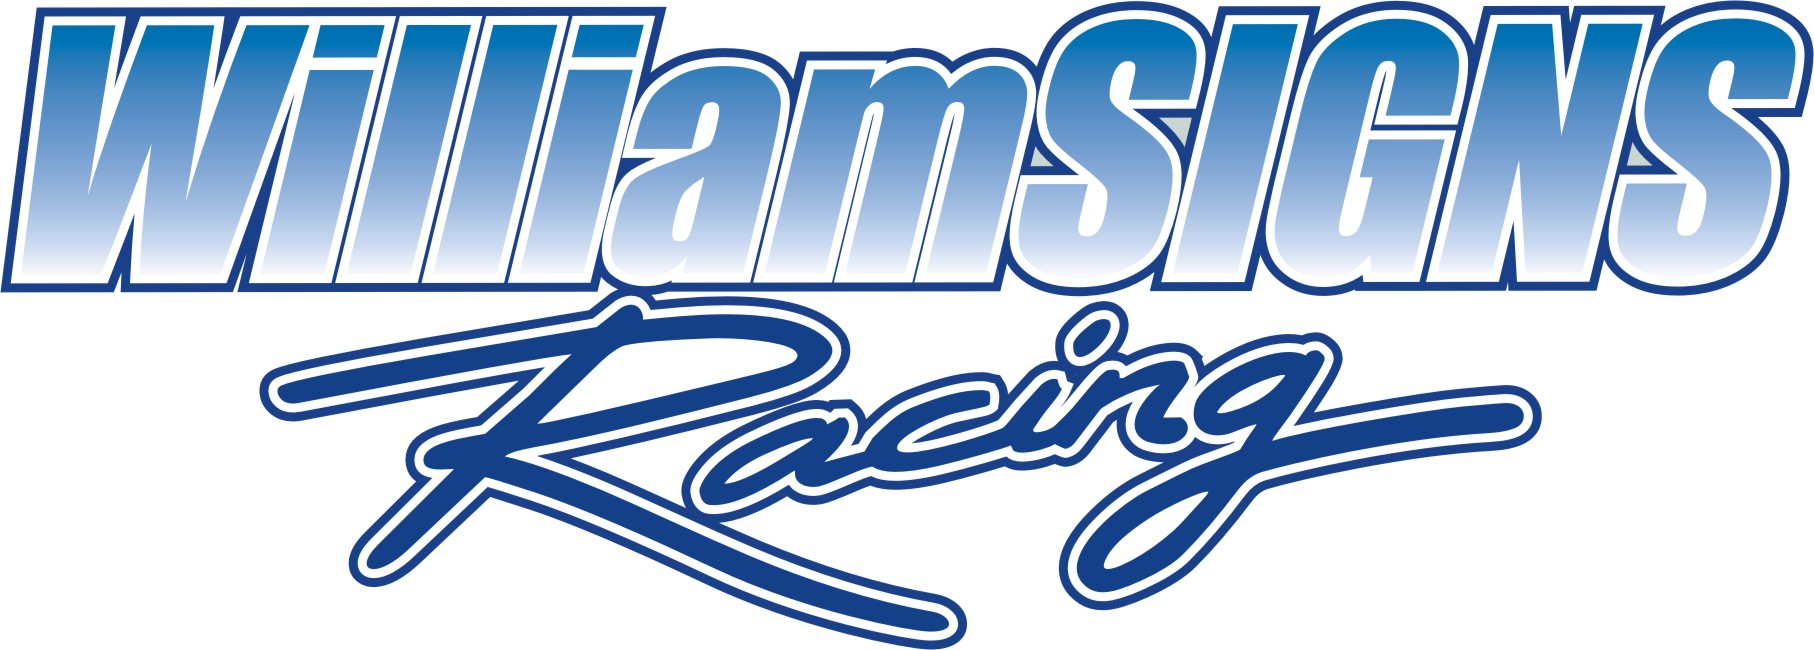 williamsigns racing_logo